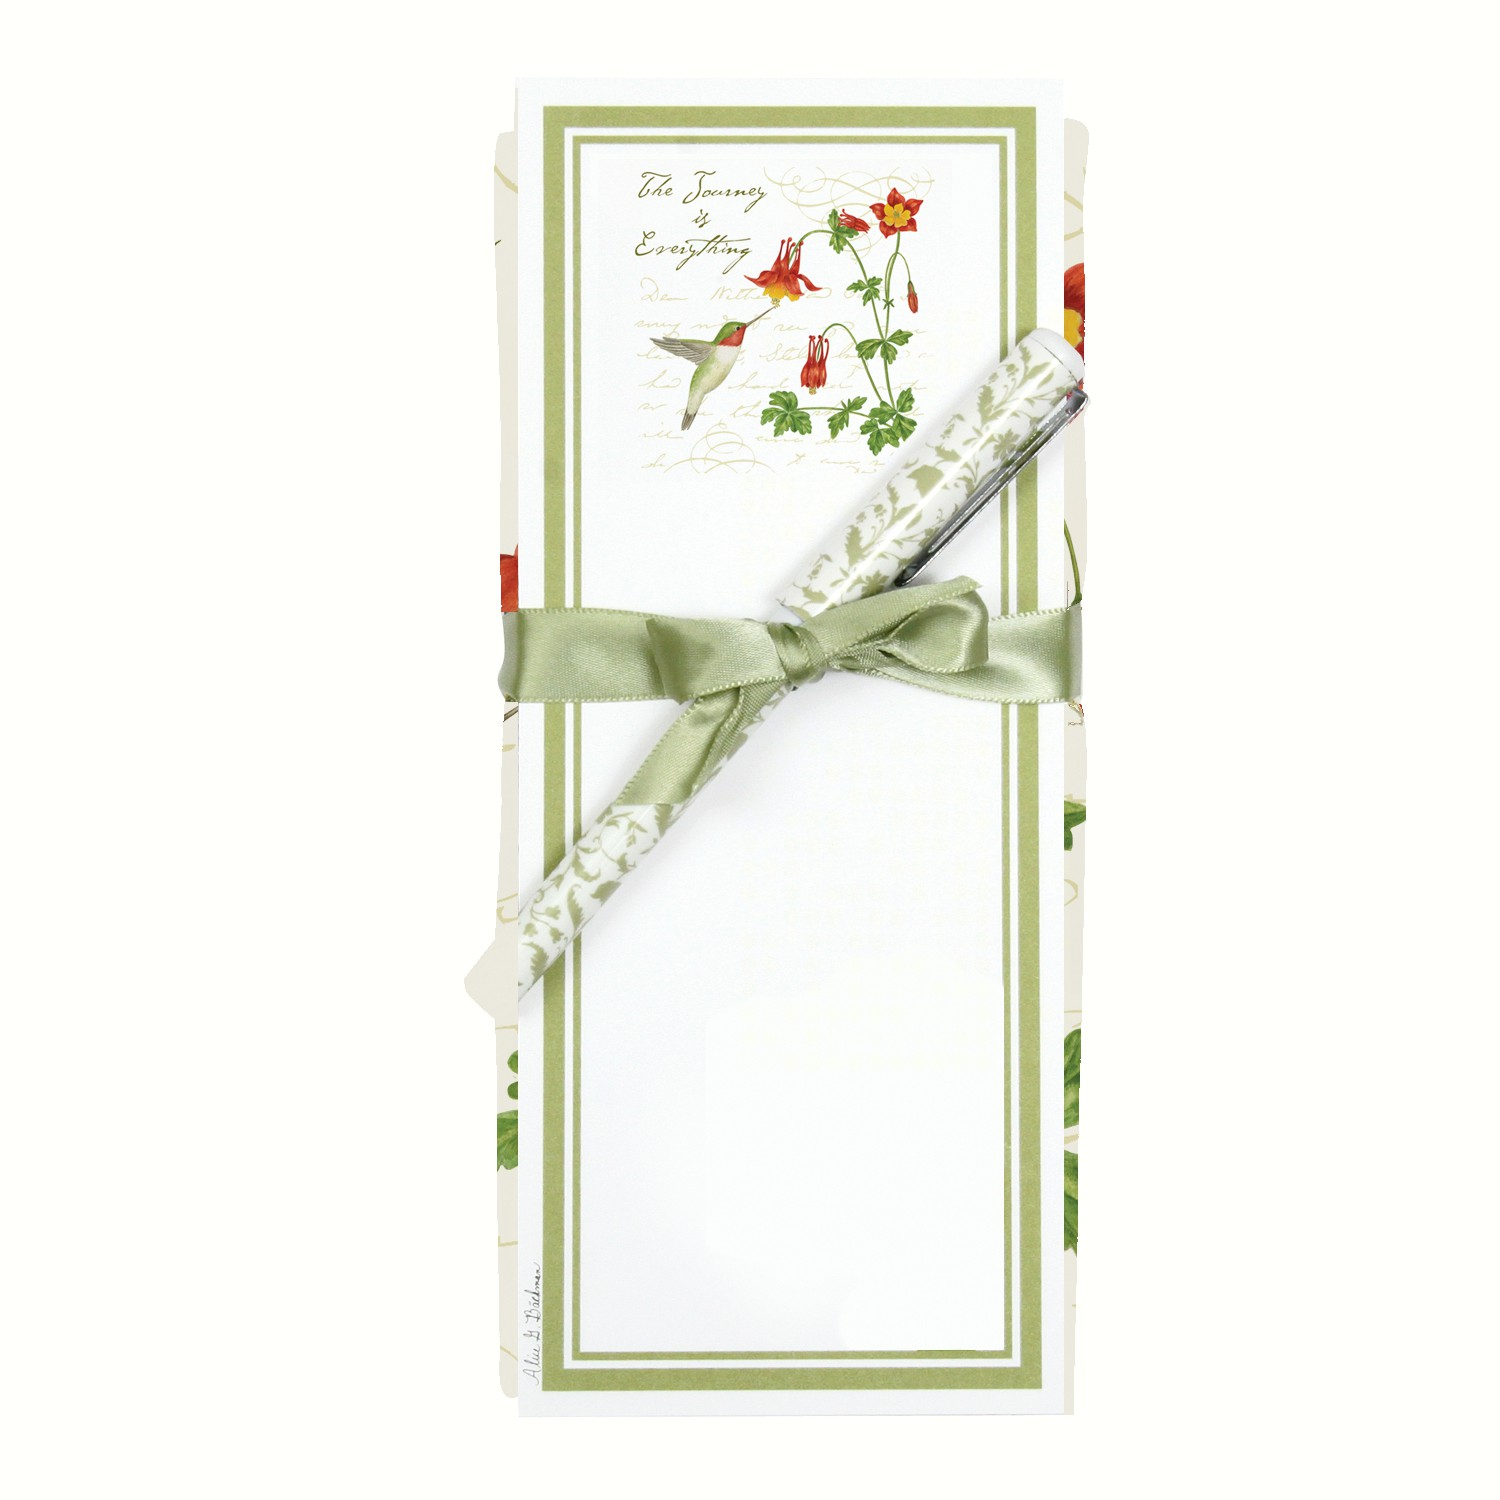 Hummingbird Flour Sack Towel and Magnetic Note Pad Set